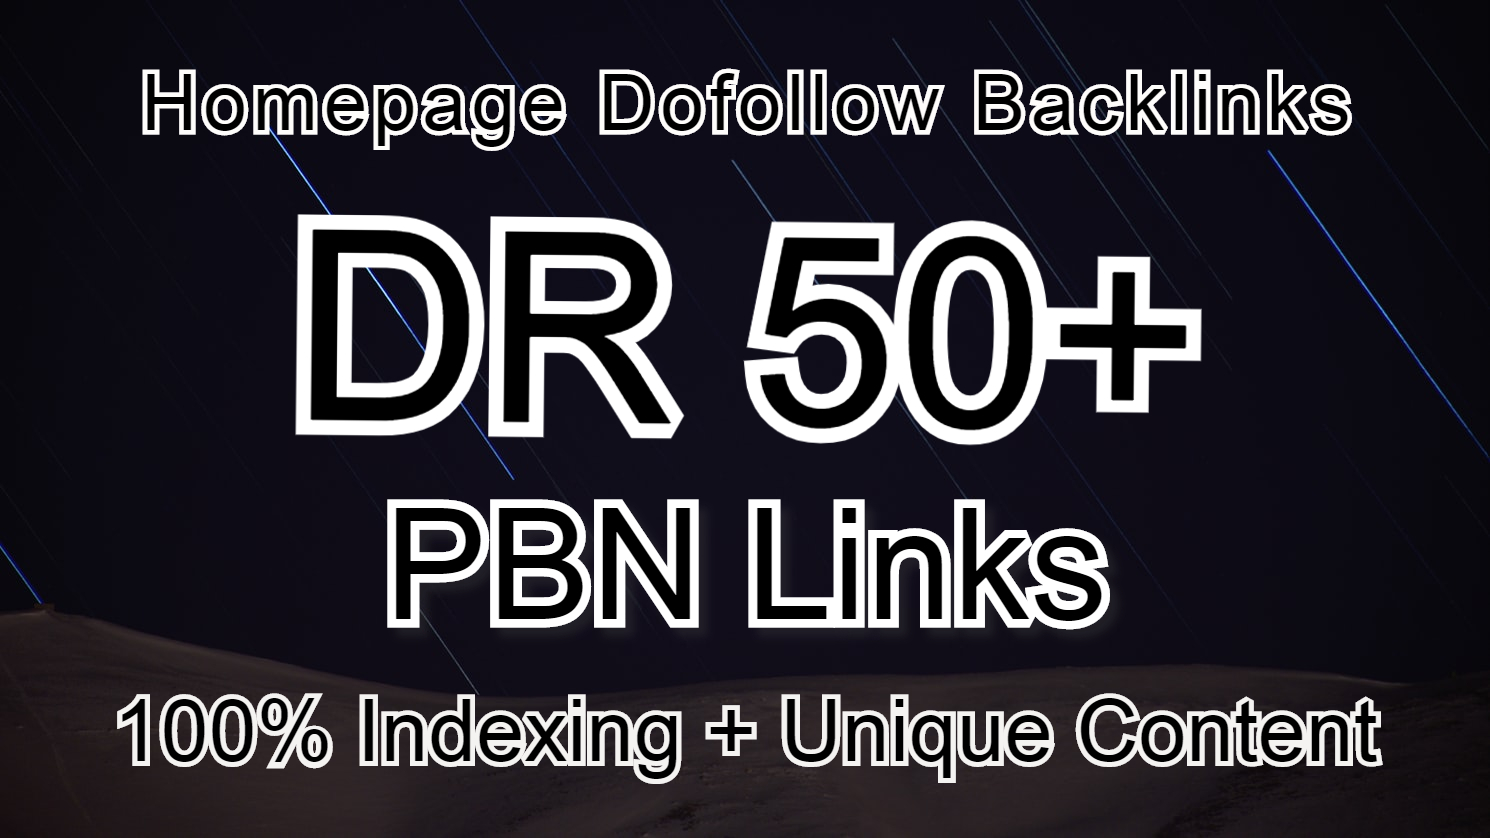 15 DR 50 to 60 permanant homepage high quality pbn backlink